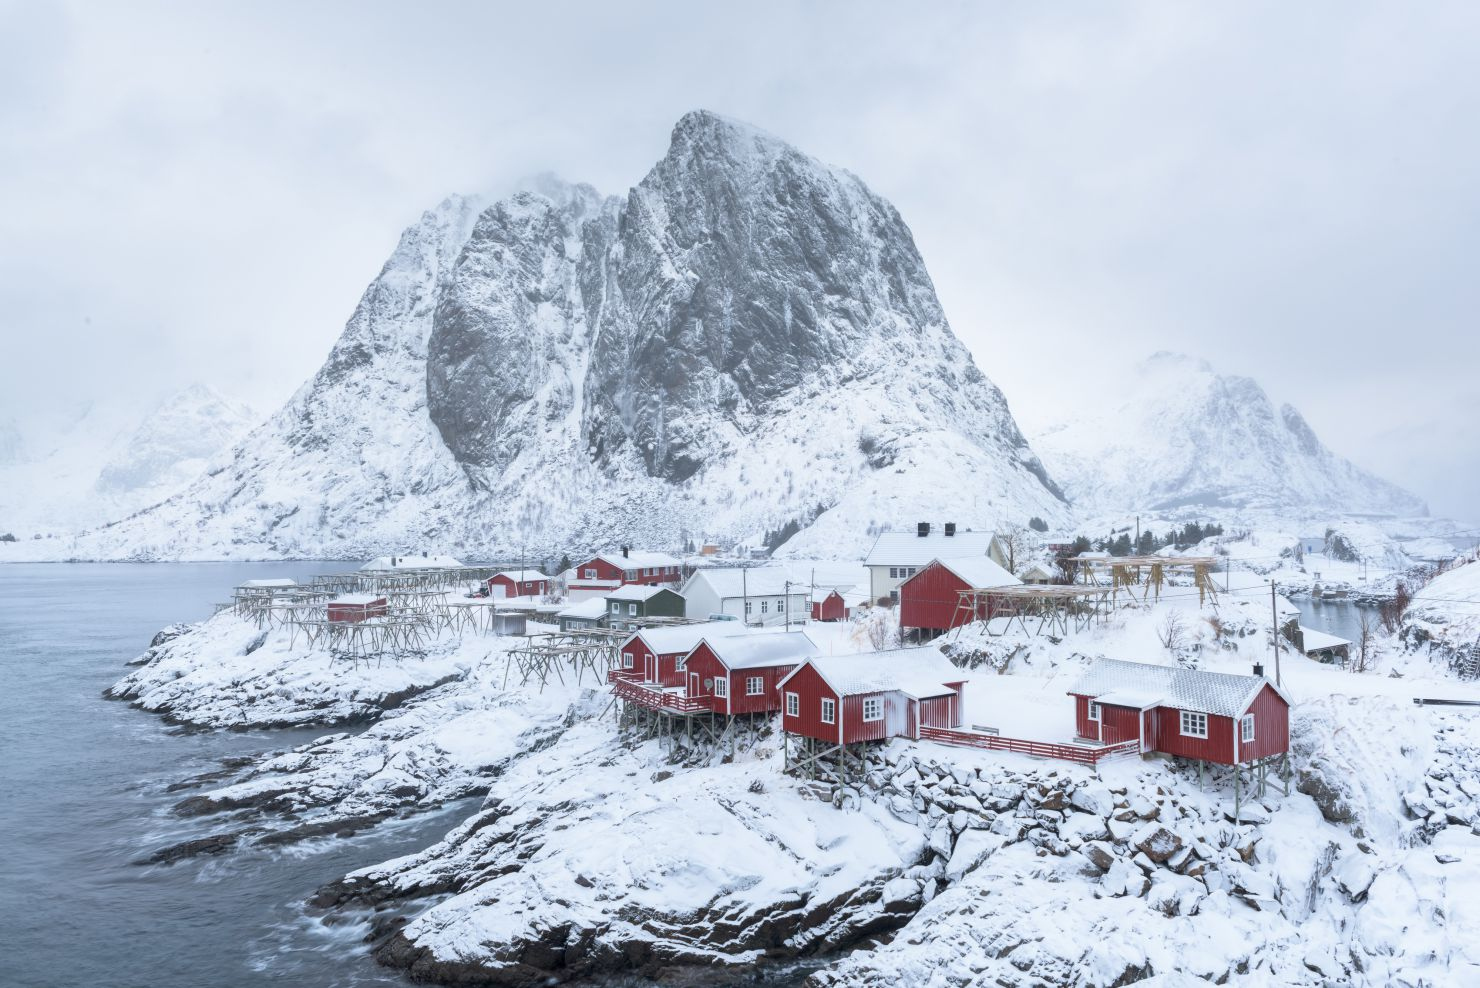 Village of Hamnoy covered in snow